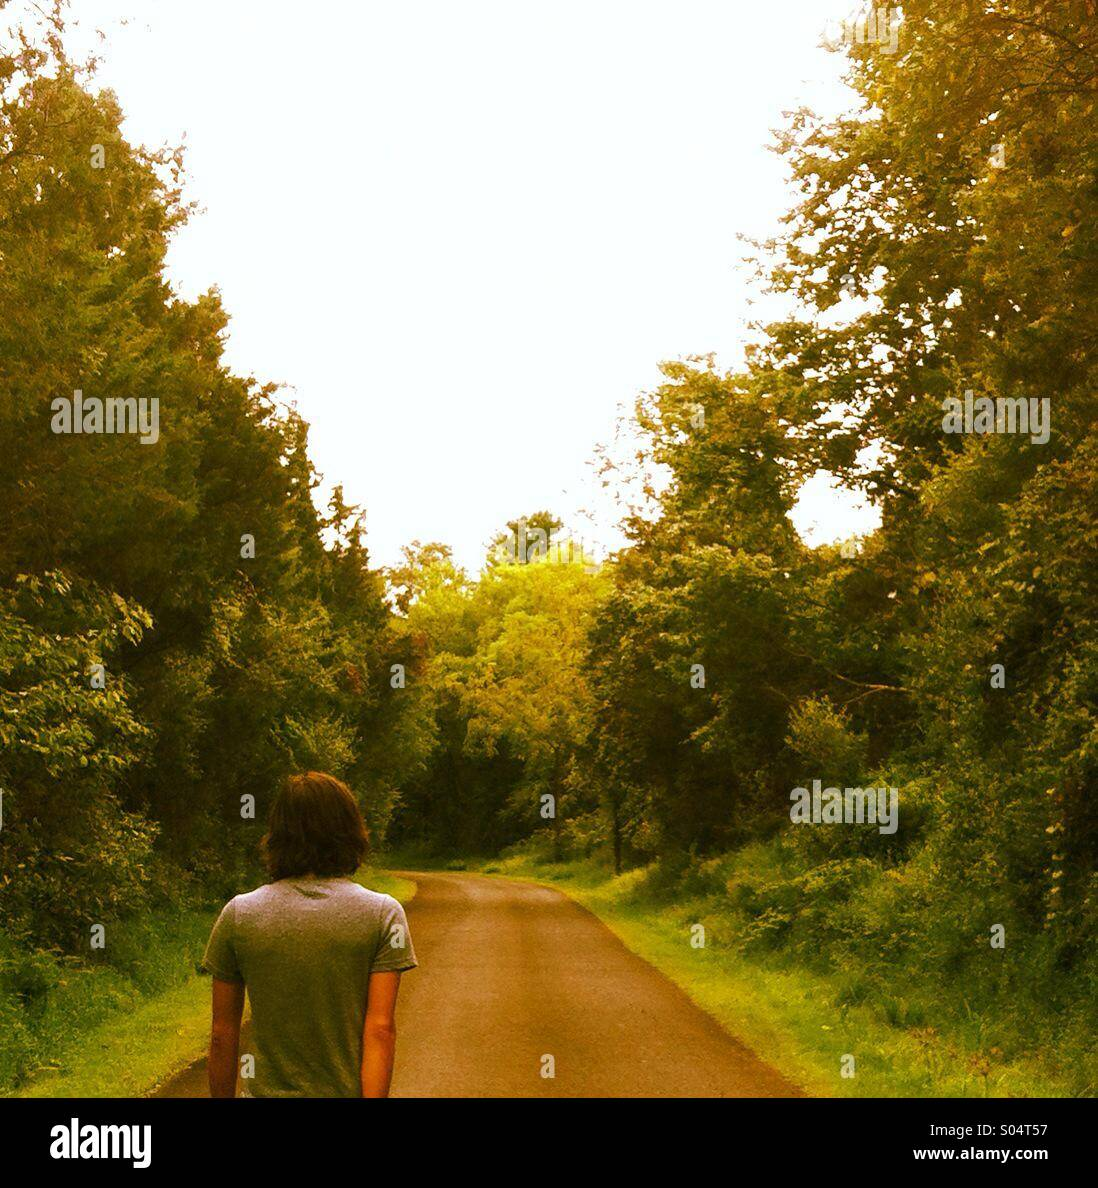 A young man walks down a narrow lane surrounded by trees. - Stock Image